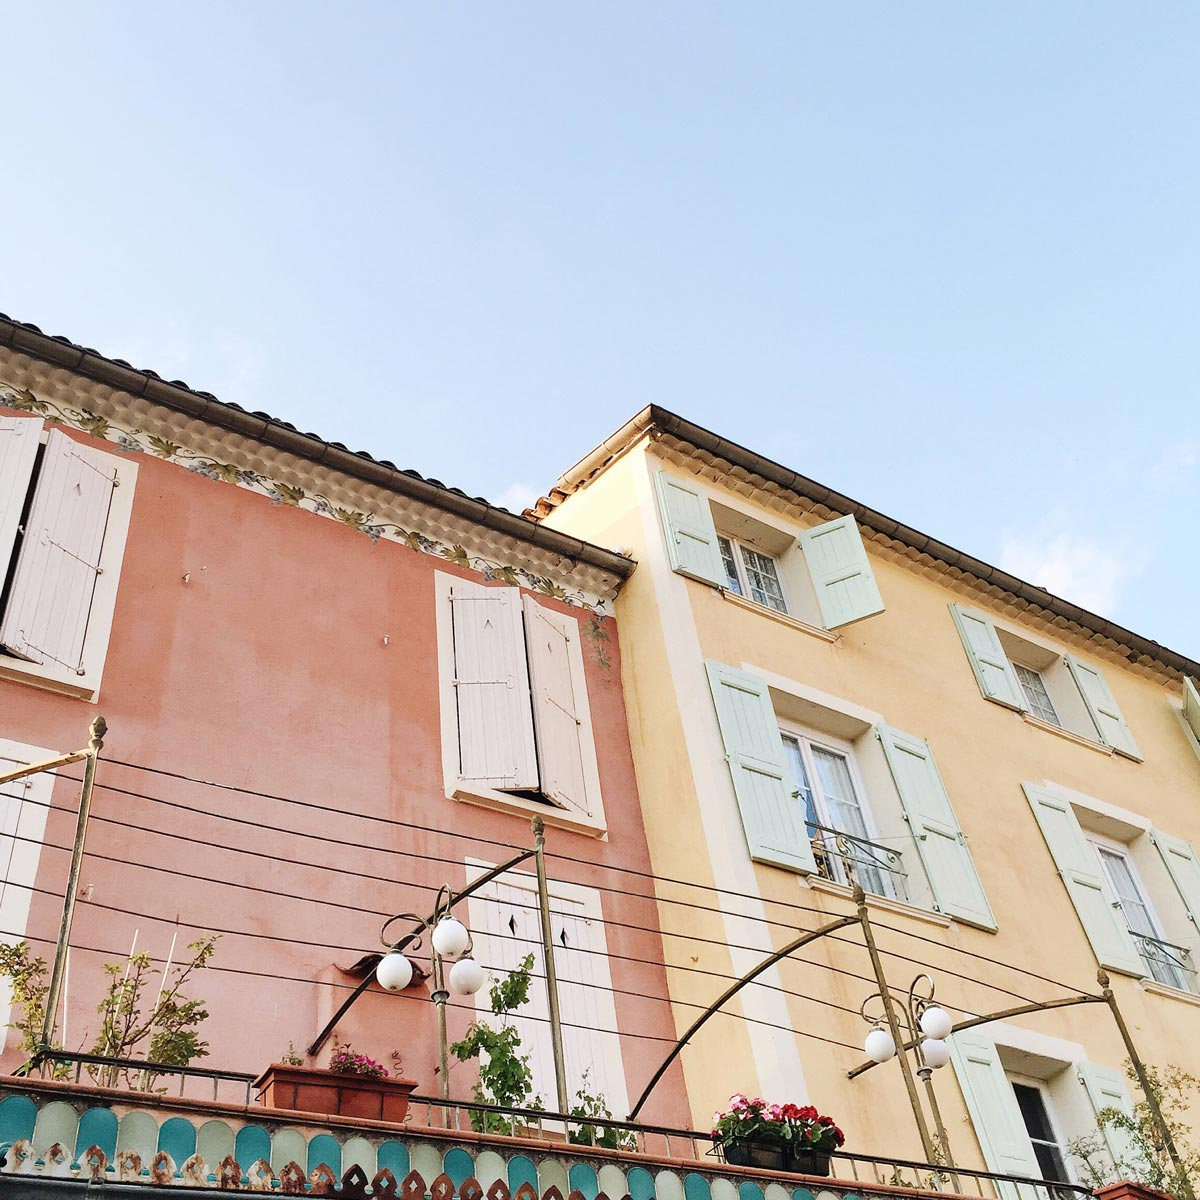 Photo by Lauren Wells of colorful french homes with window shutters